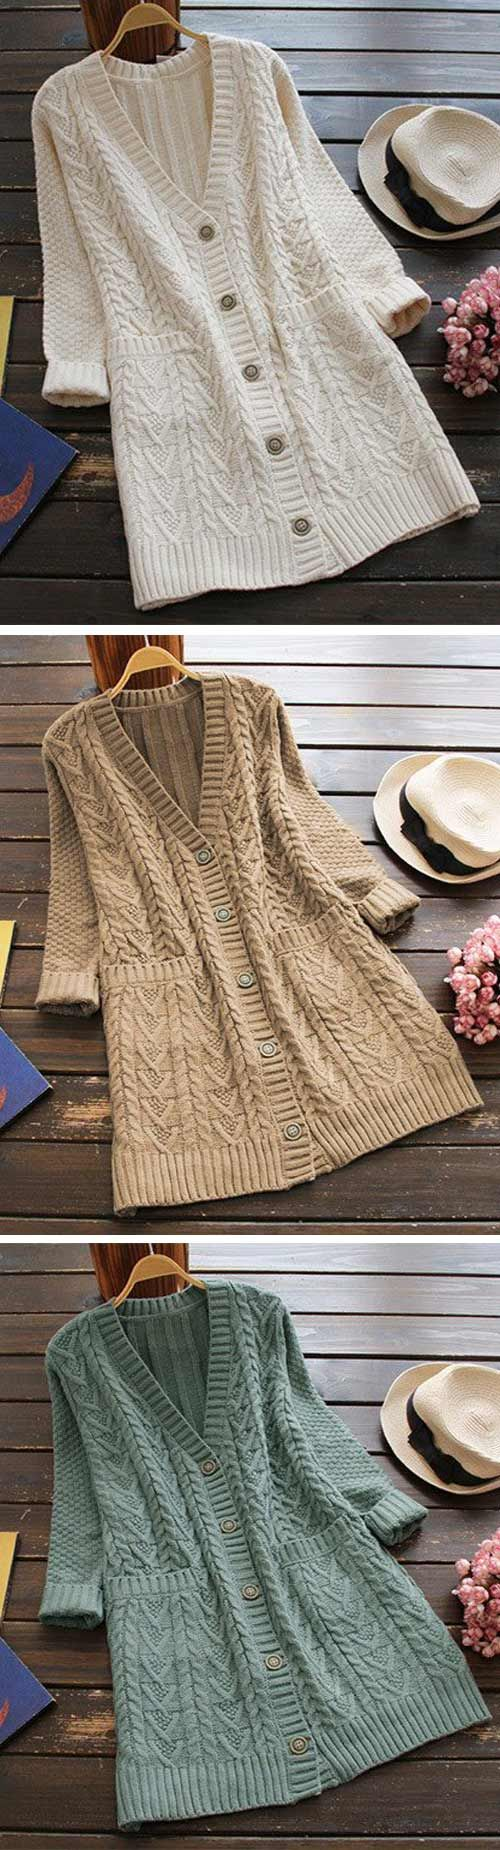 Only $31.99 Free shipping! That's it. Go wherever the wind takes you in the Full Exposure Twist Long Sweater Cardigan. Keep it simple this season with its twist pattern and lovely pockets at sides. Show off now!